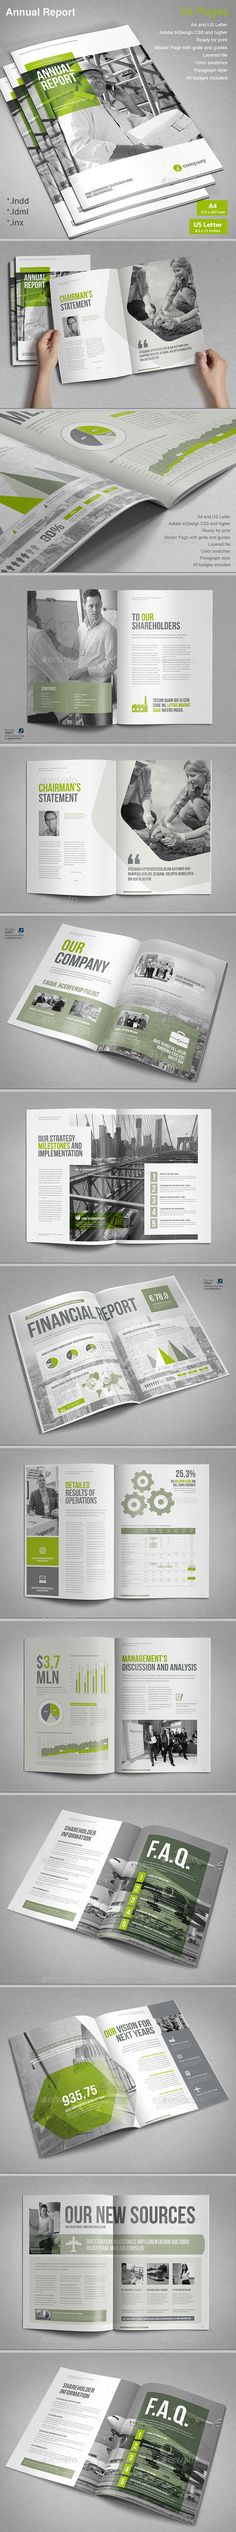 Annual Report Template #design Download: http://graphicriver.net/item/annual-report/13169034?ref=ksioks